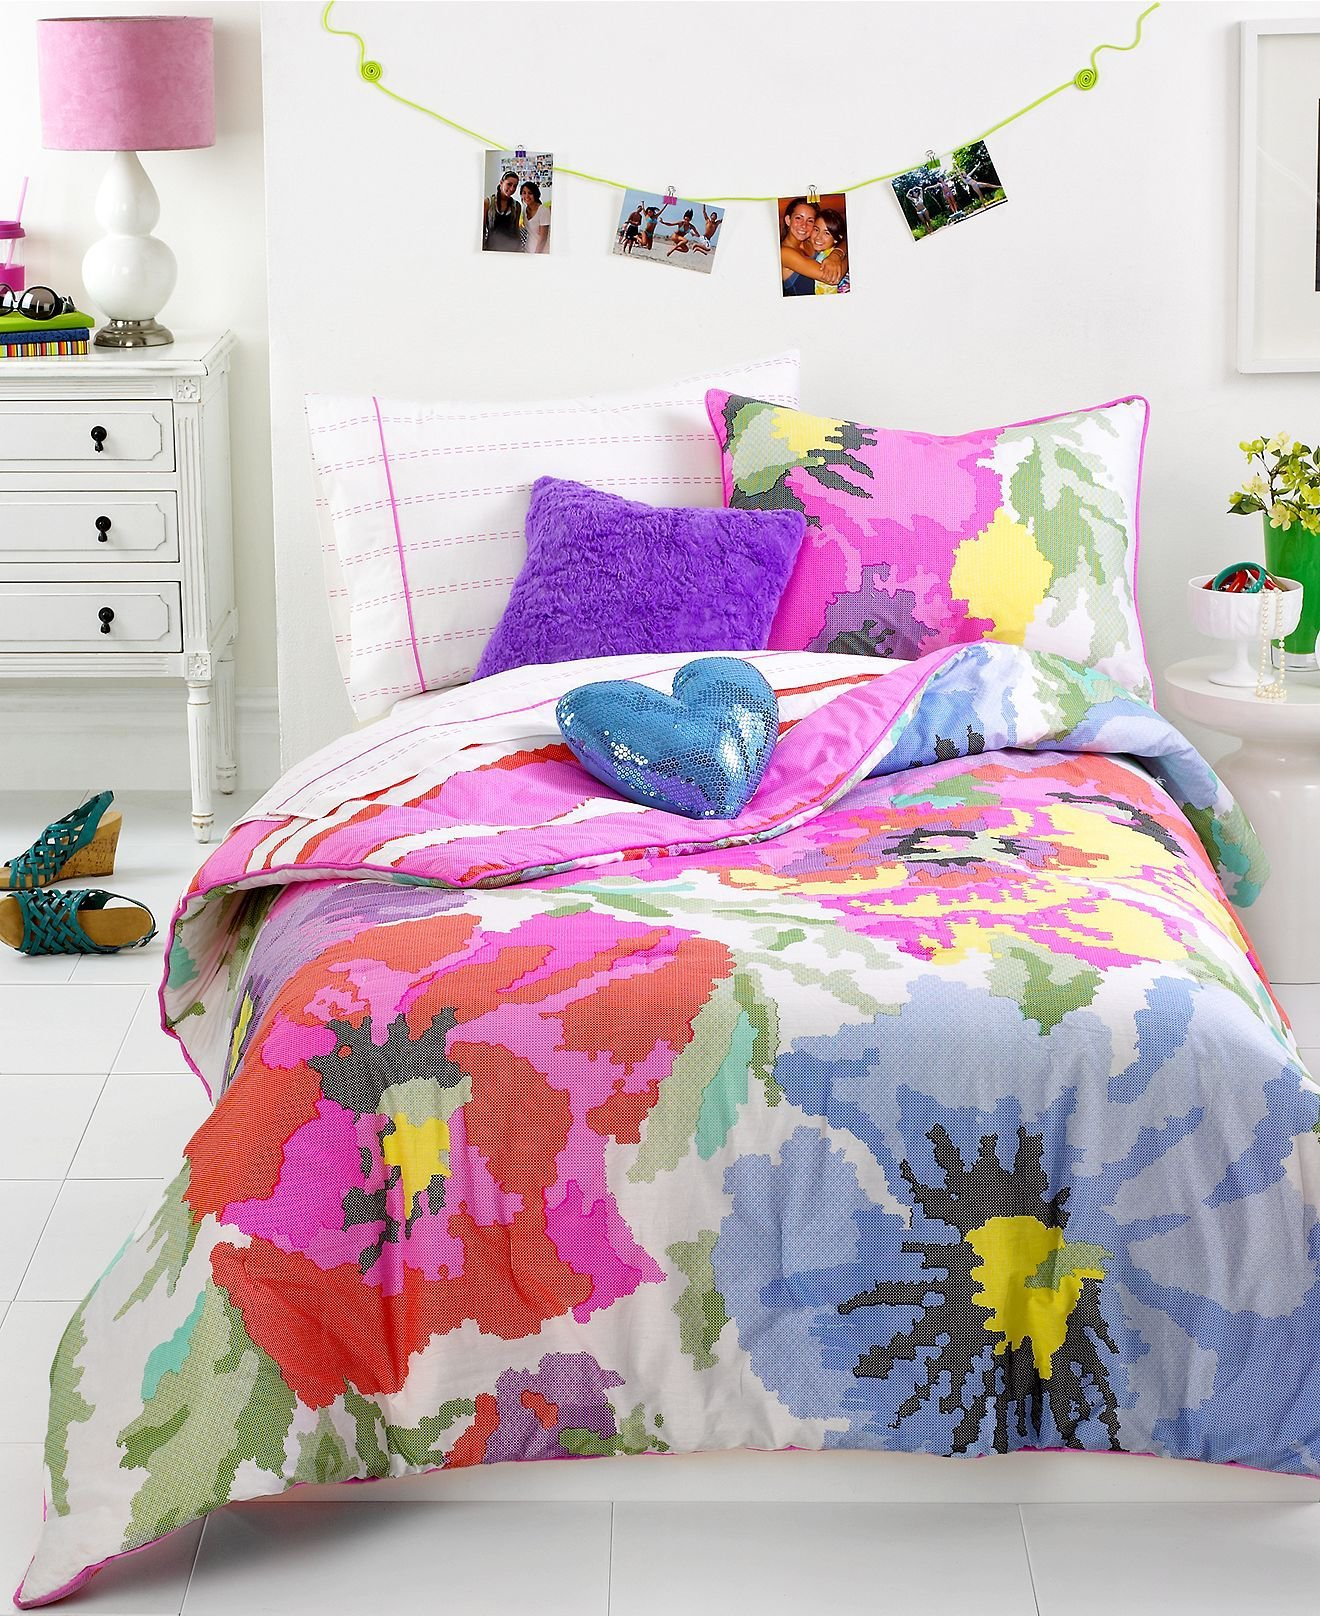 teen vogue bedding neon needlepoint from macys. Black Bedroom Furniture Sets. Home Design Ideas